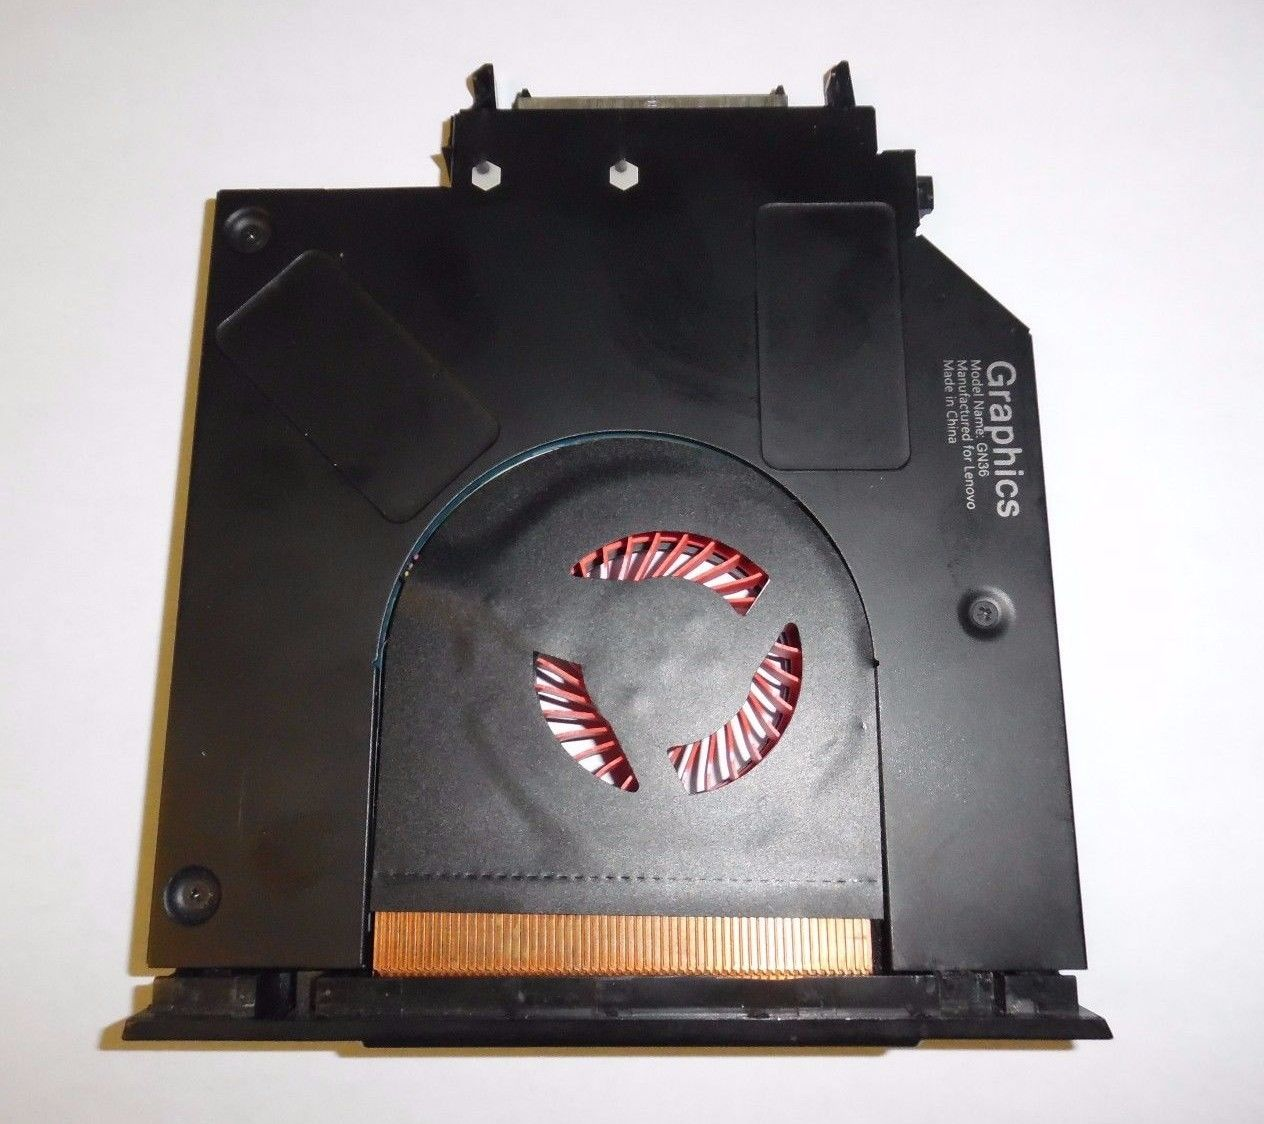 Lenovo IdeaPad Y500 Ultrabay Graphics Card GN36 2GB NVIDIA GeForce GT 650M